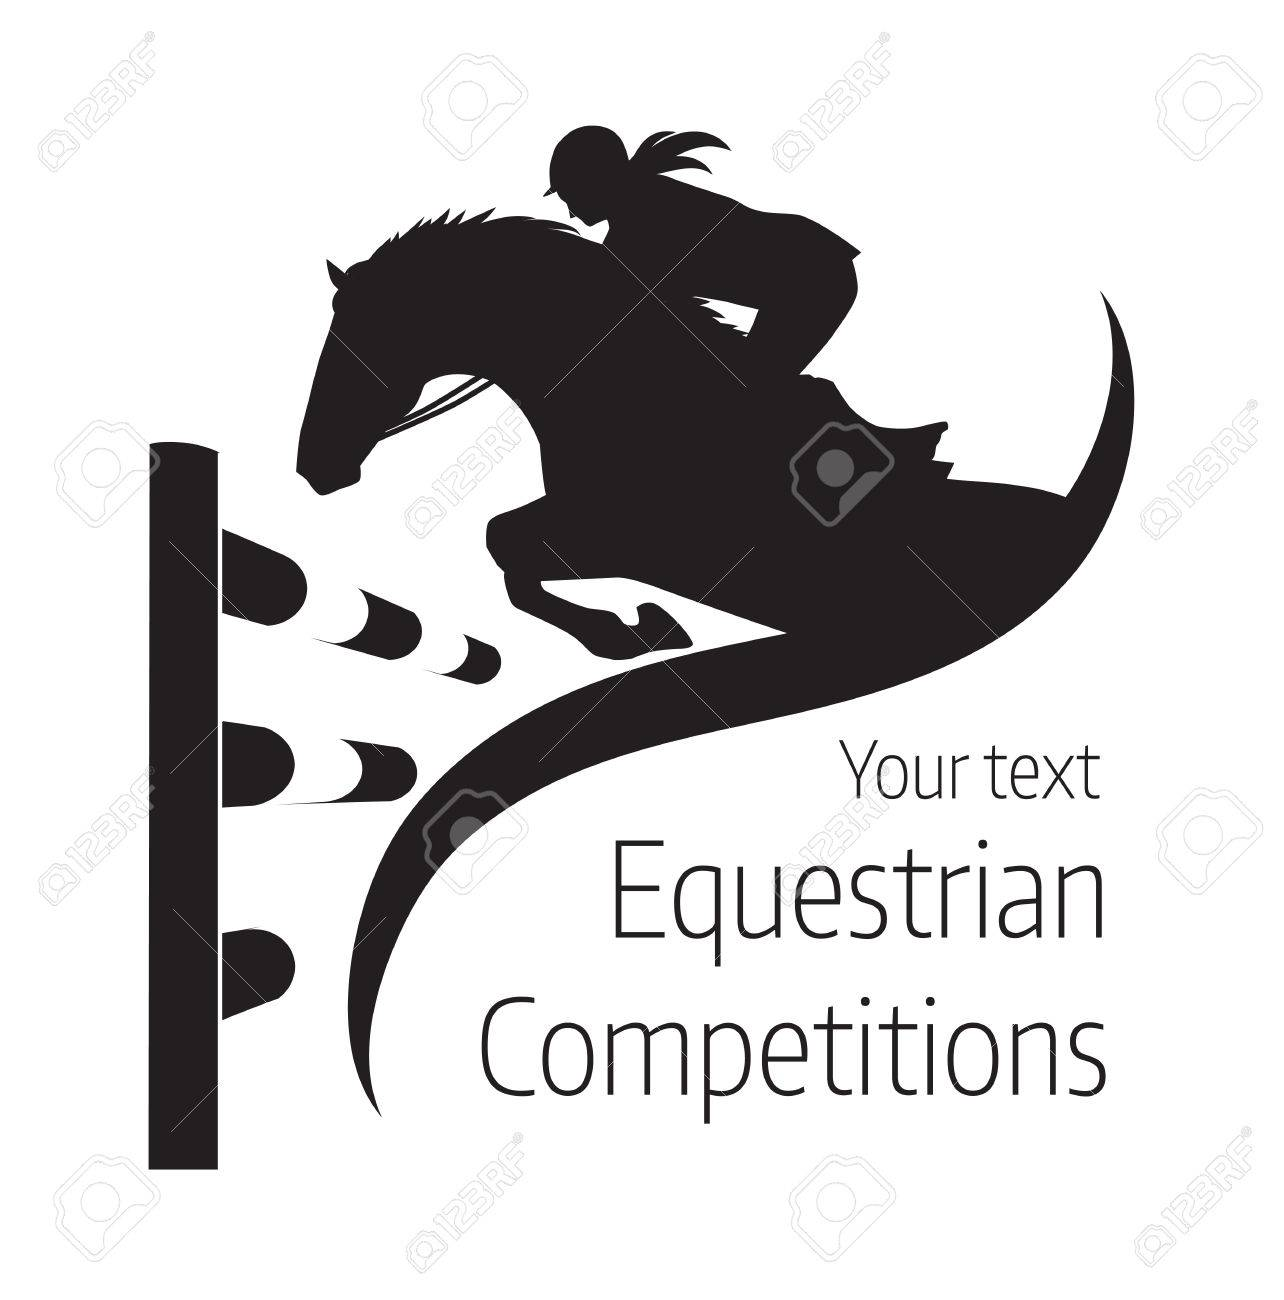 Equestrian competitions - illustration of horse - 68099748